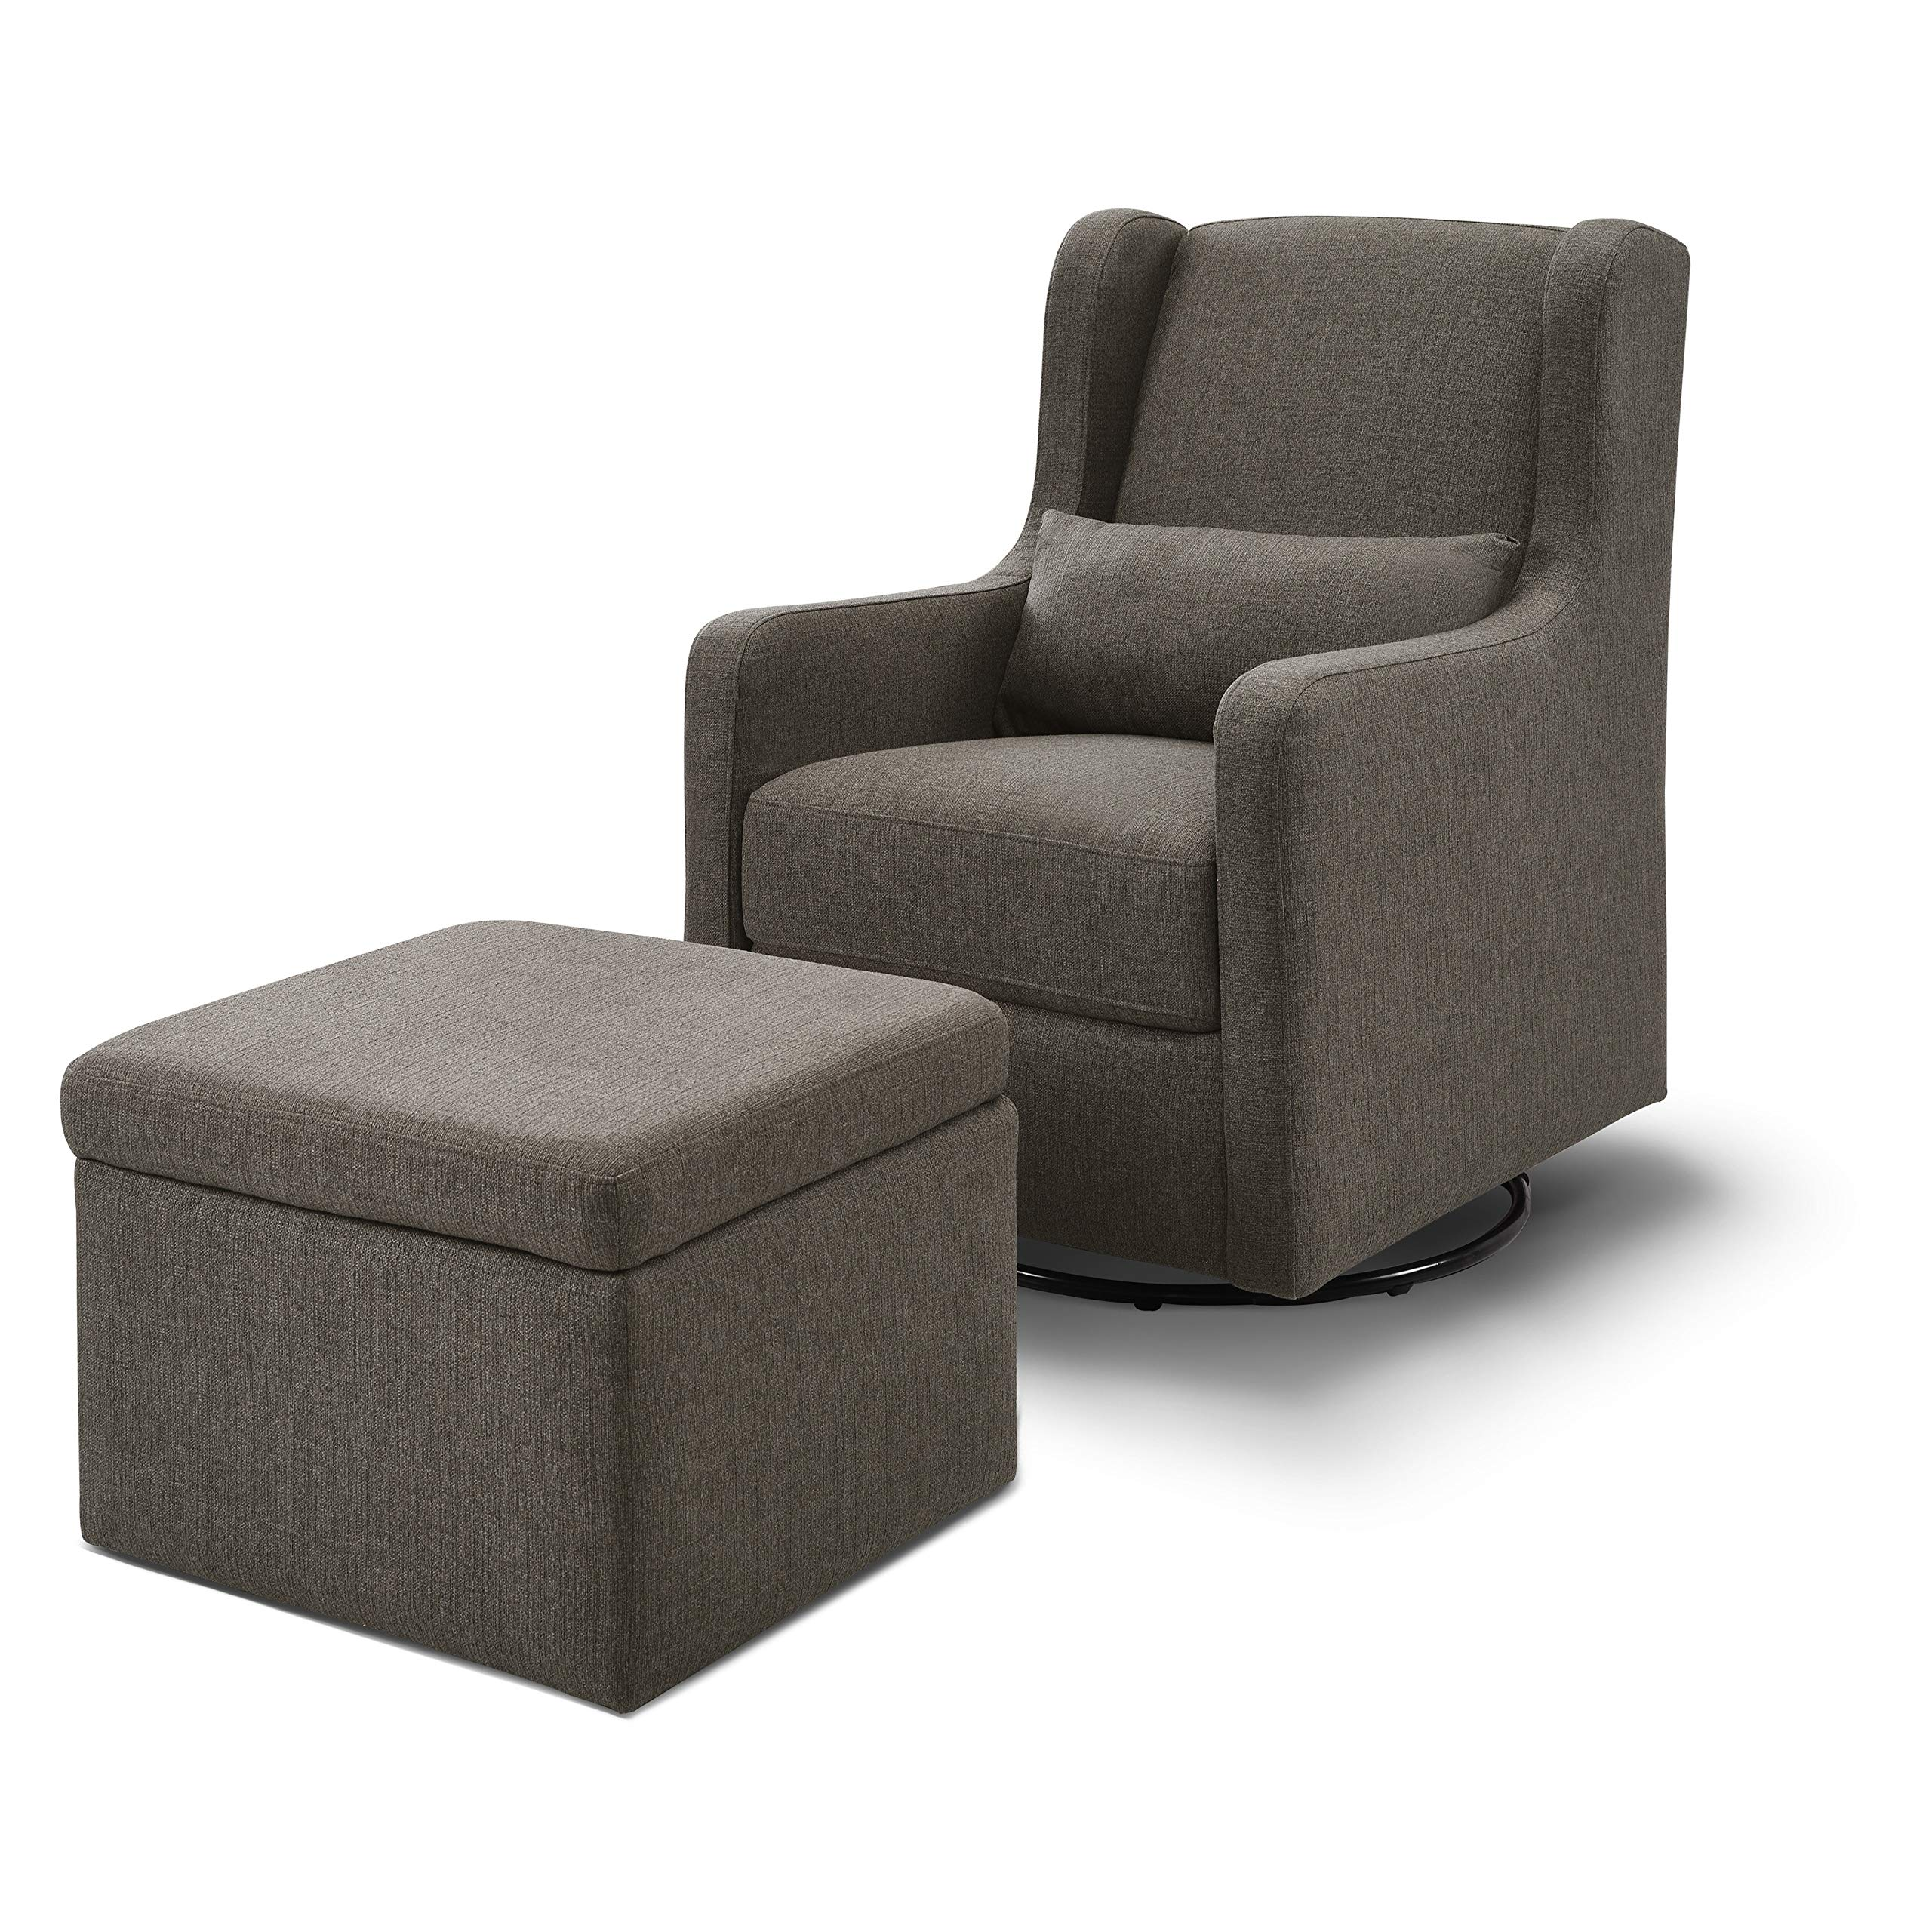 Carter's by Davinci Adrian Swivel Glider with Storage Ottoman in Charcoal Linen | Water Repellent and Stain Resistant Fabric by Carter's by DaVinci